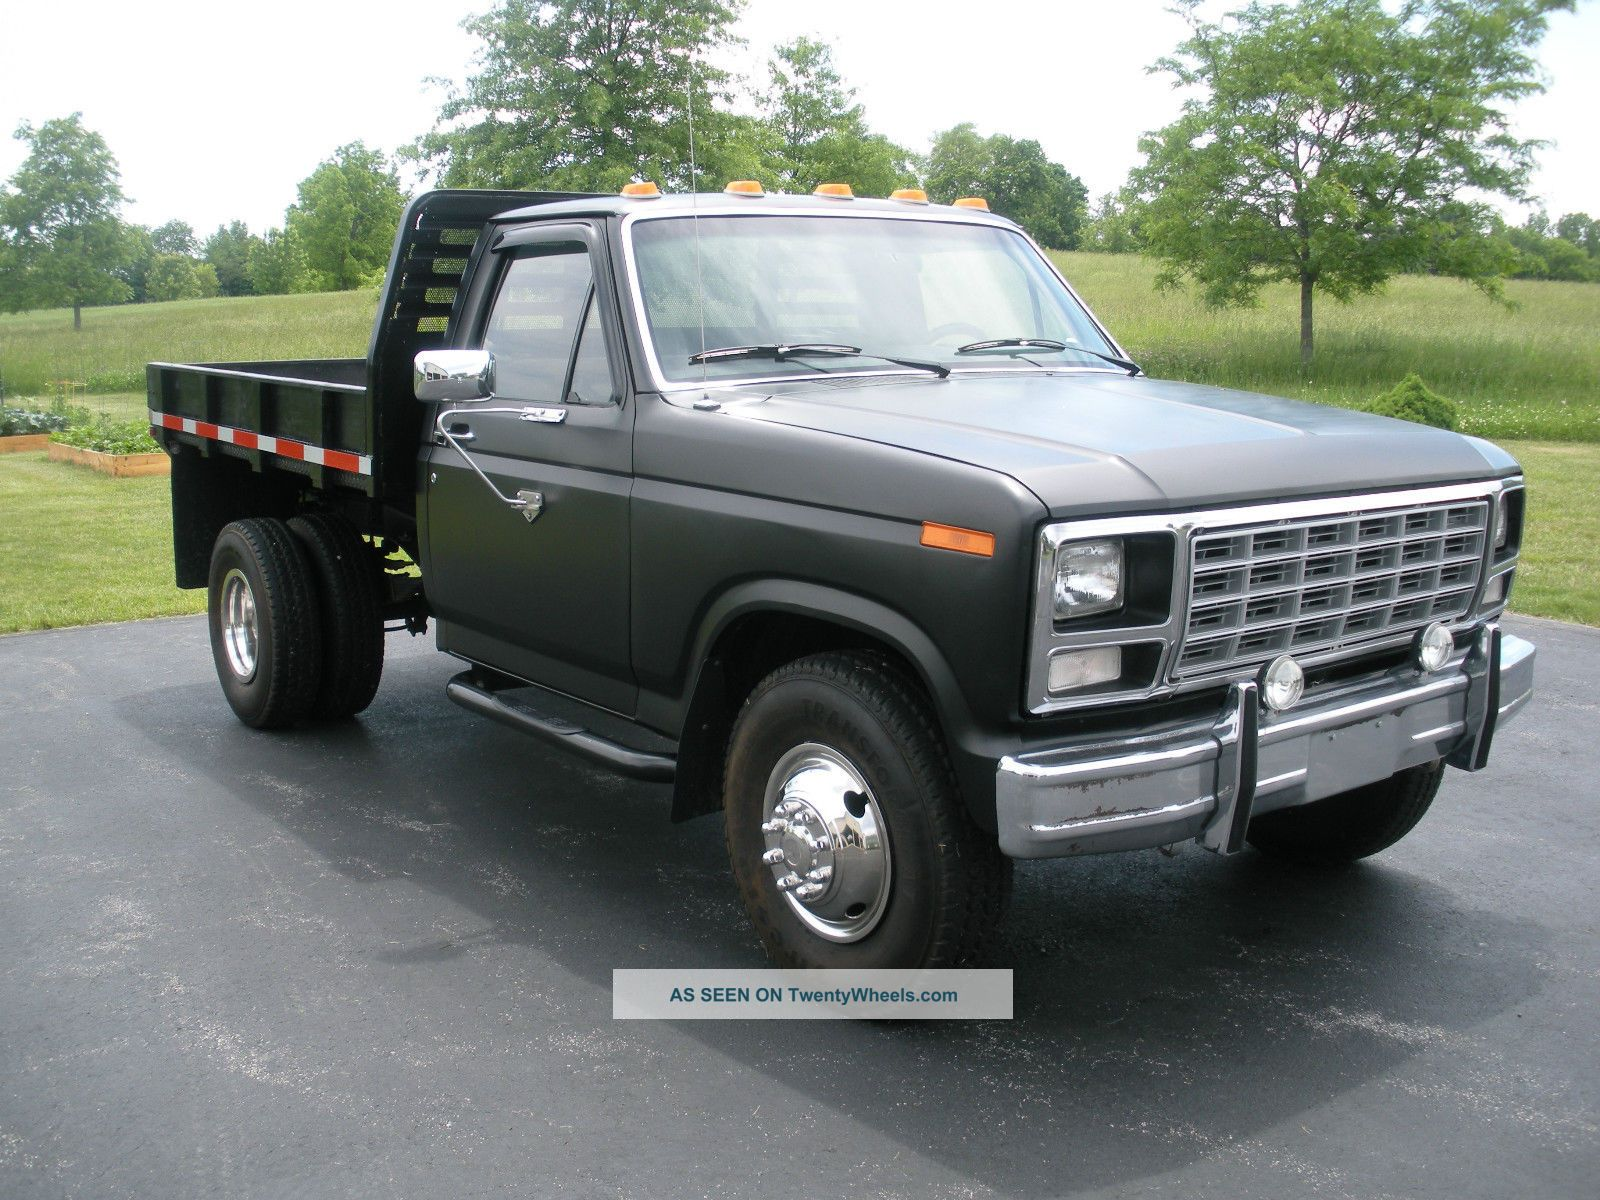 1980 ford f 350 pictures to pin on pinterest pinsdaddy 1980 Ford F- 250 2012 Ford F 350 Dually